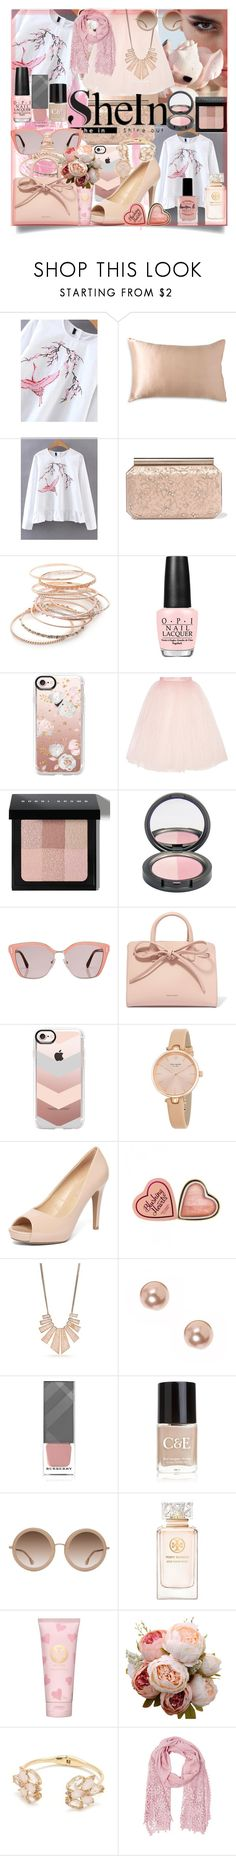 """Blush"" by claire394 ❤ liked on Polyvore featuring Donna Karan, Oscar de la Renta, Red Camel, OPI, Casetify, Ballet Beautiful, Bobbi Brown Cosmetics, Prada, Mansur Gavriel and Kate Spade"